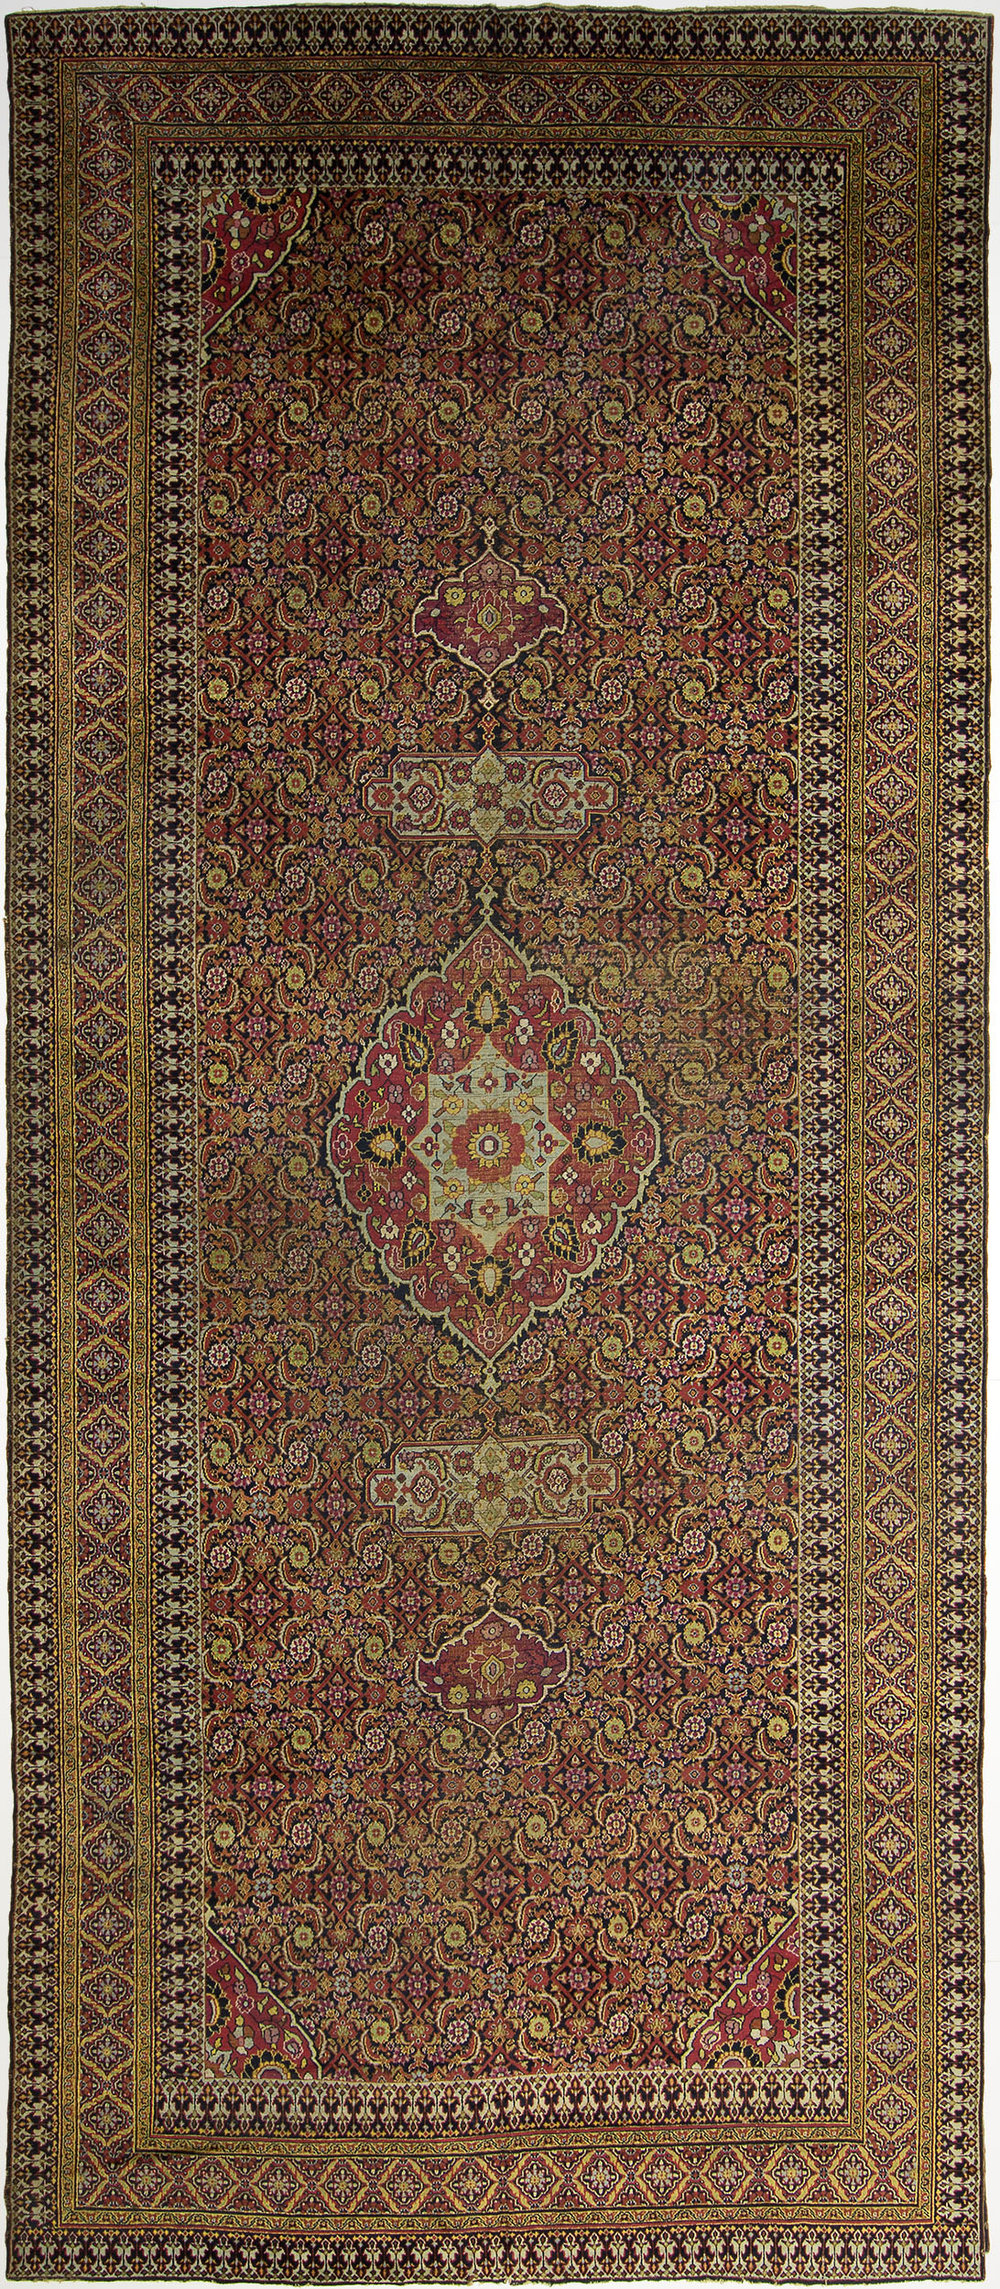 "Khorassan Gallery Carpet 19' 7"" x 8' 0"""